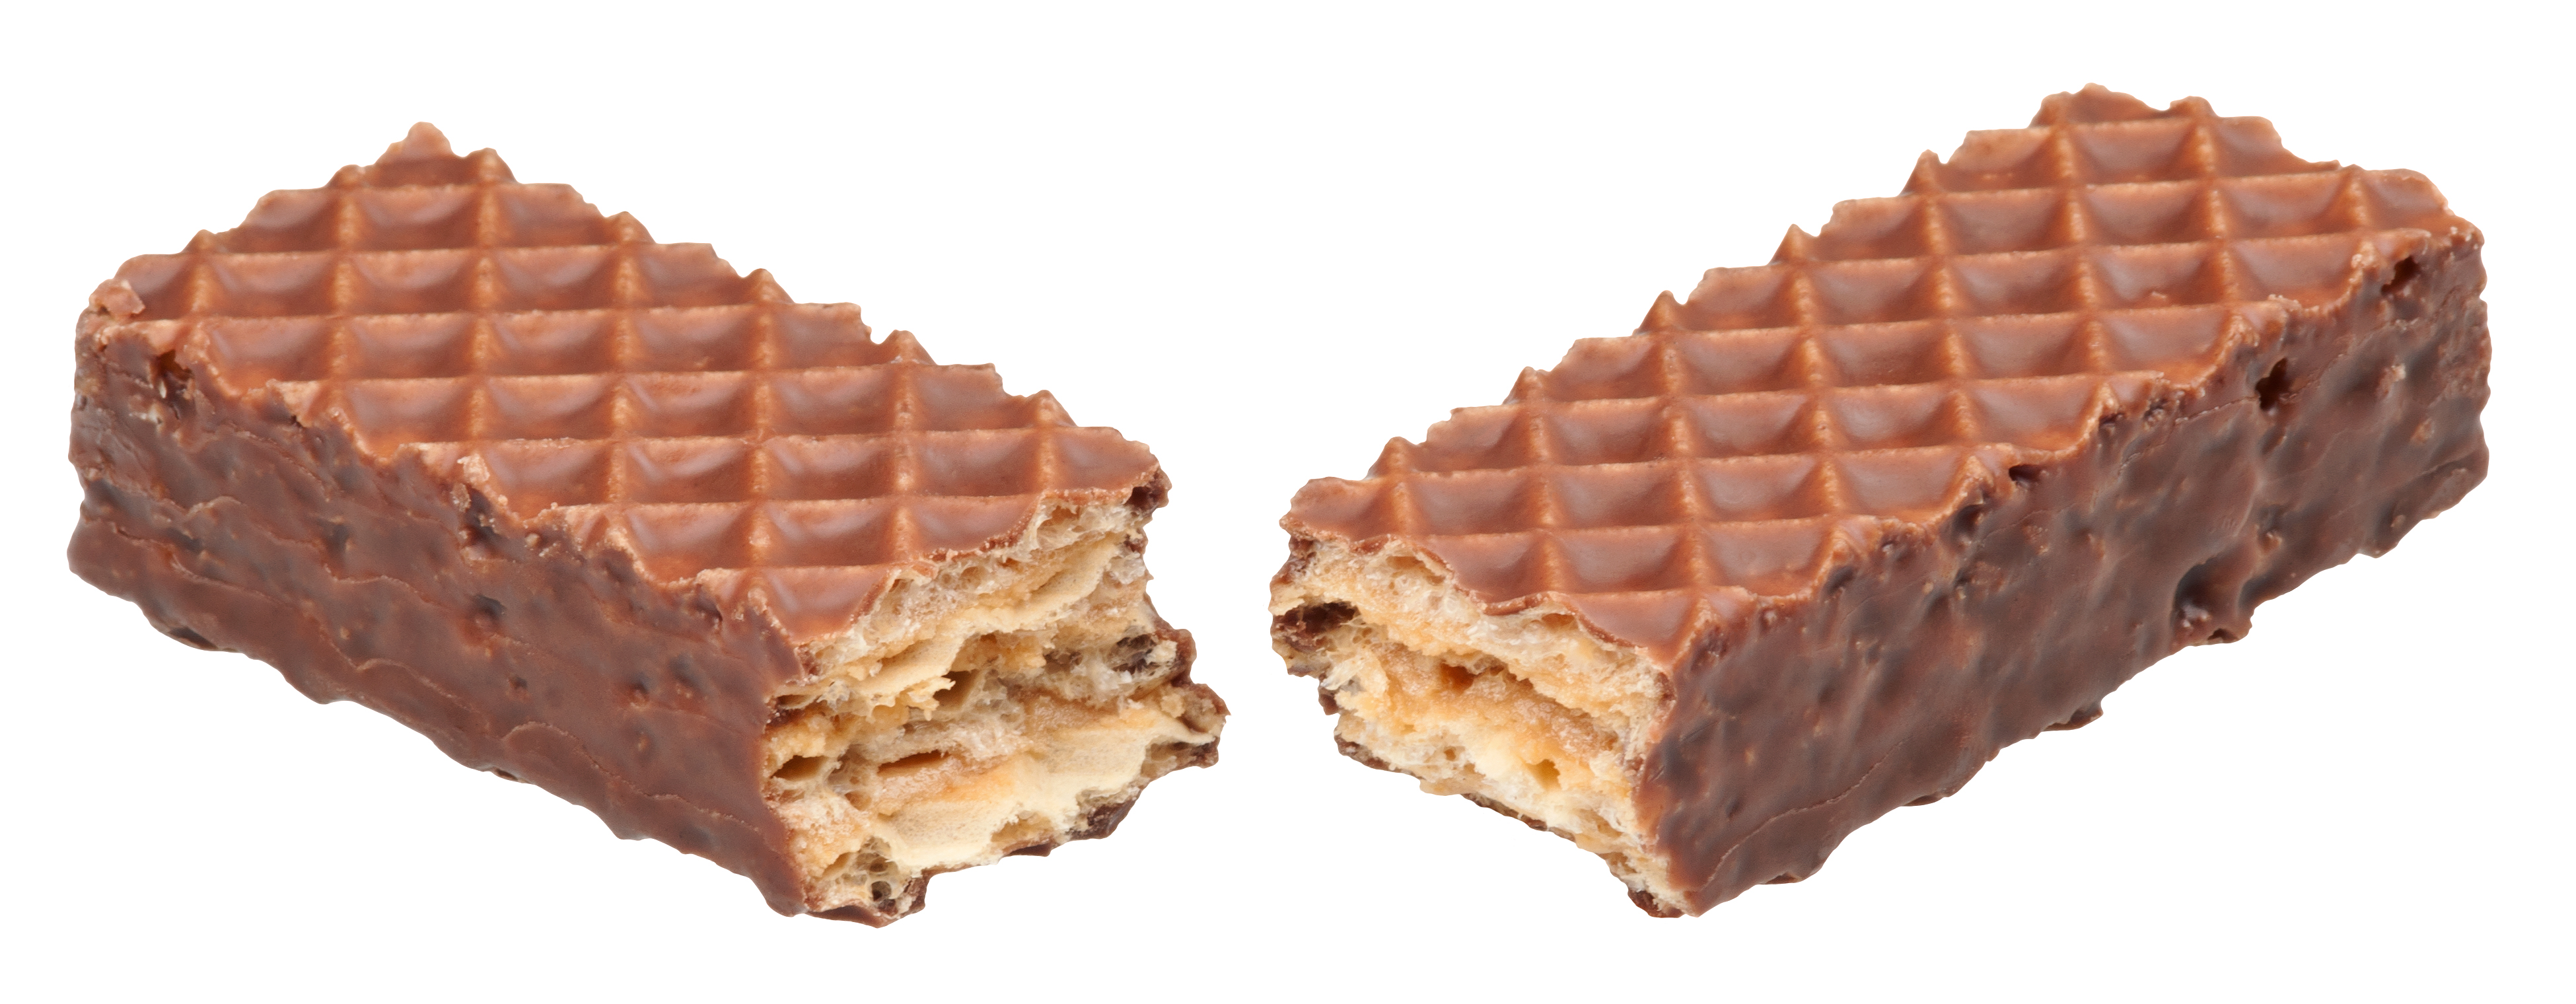 File:LD-Nutty-Bar-Split.jpg - Wikimedia Commons